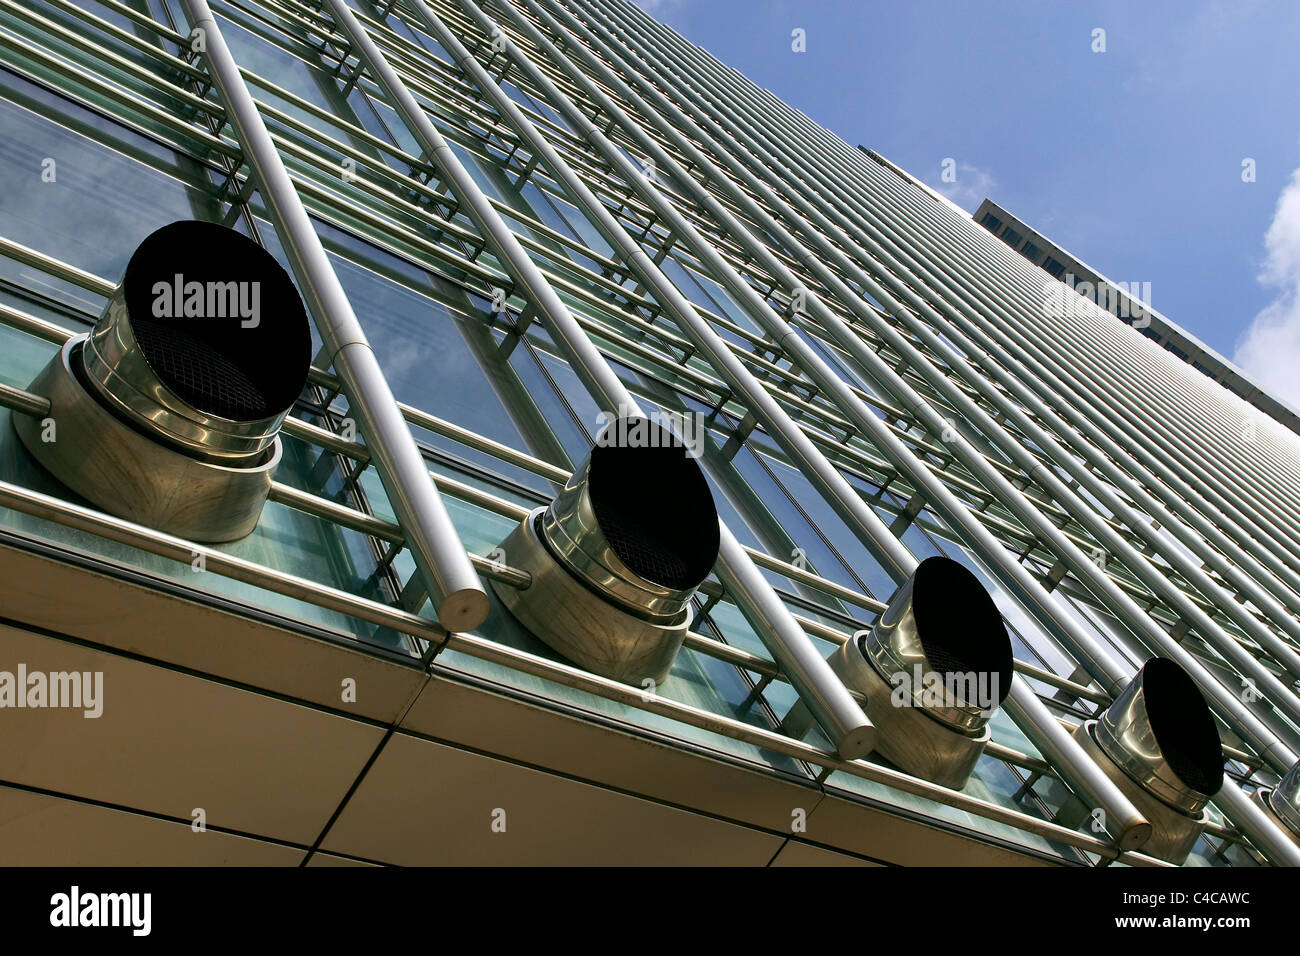 Exhaust Systems For Buildings ~ Exhaust ventilation system office building stock photo